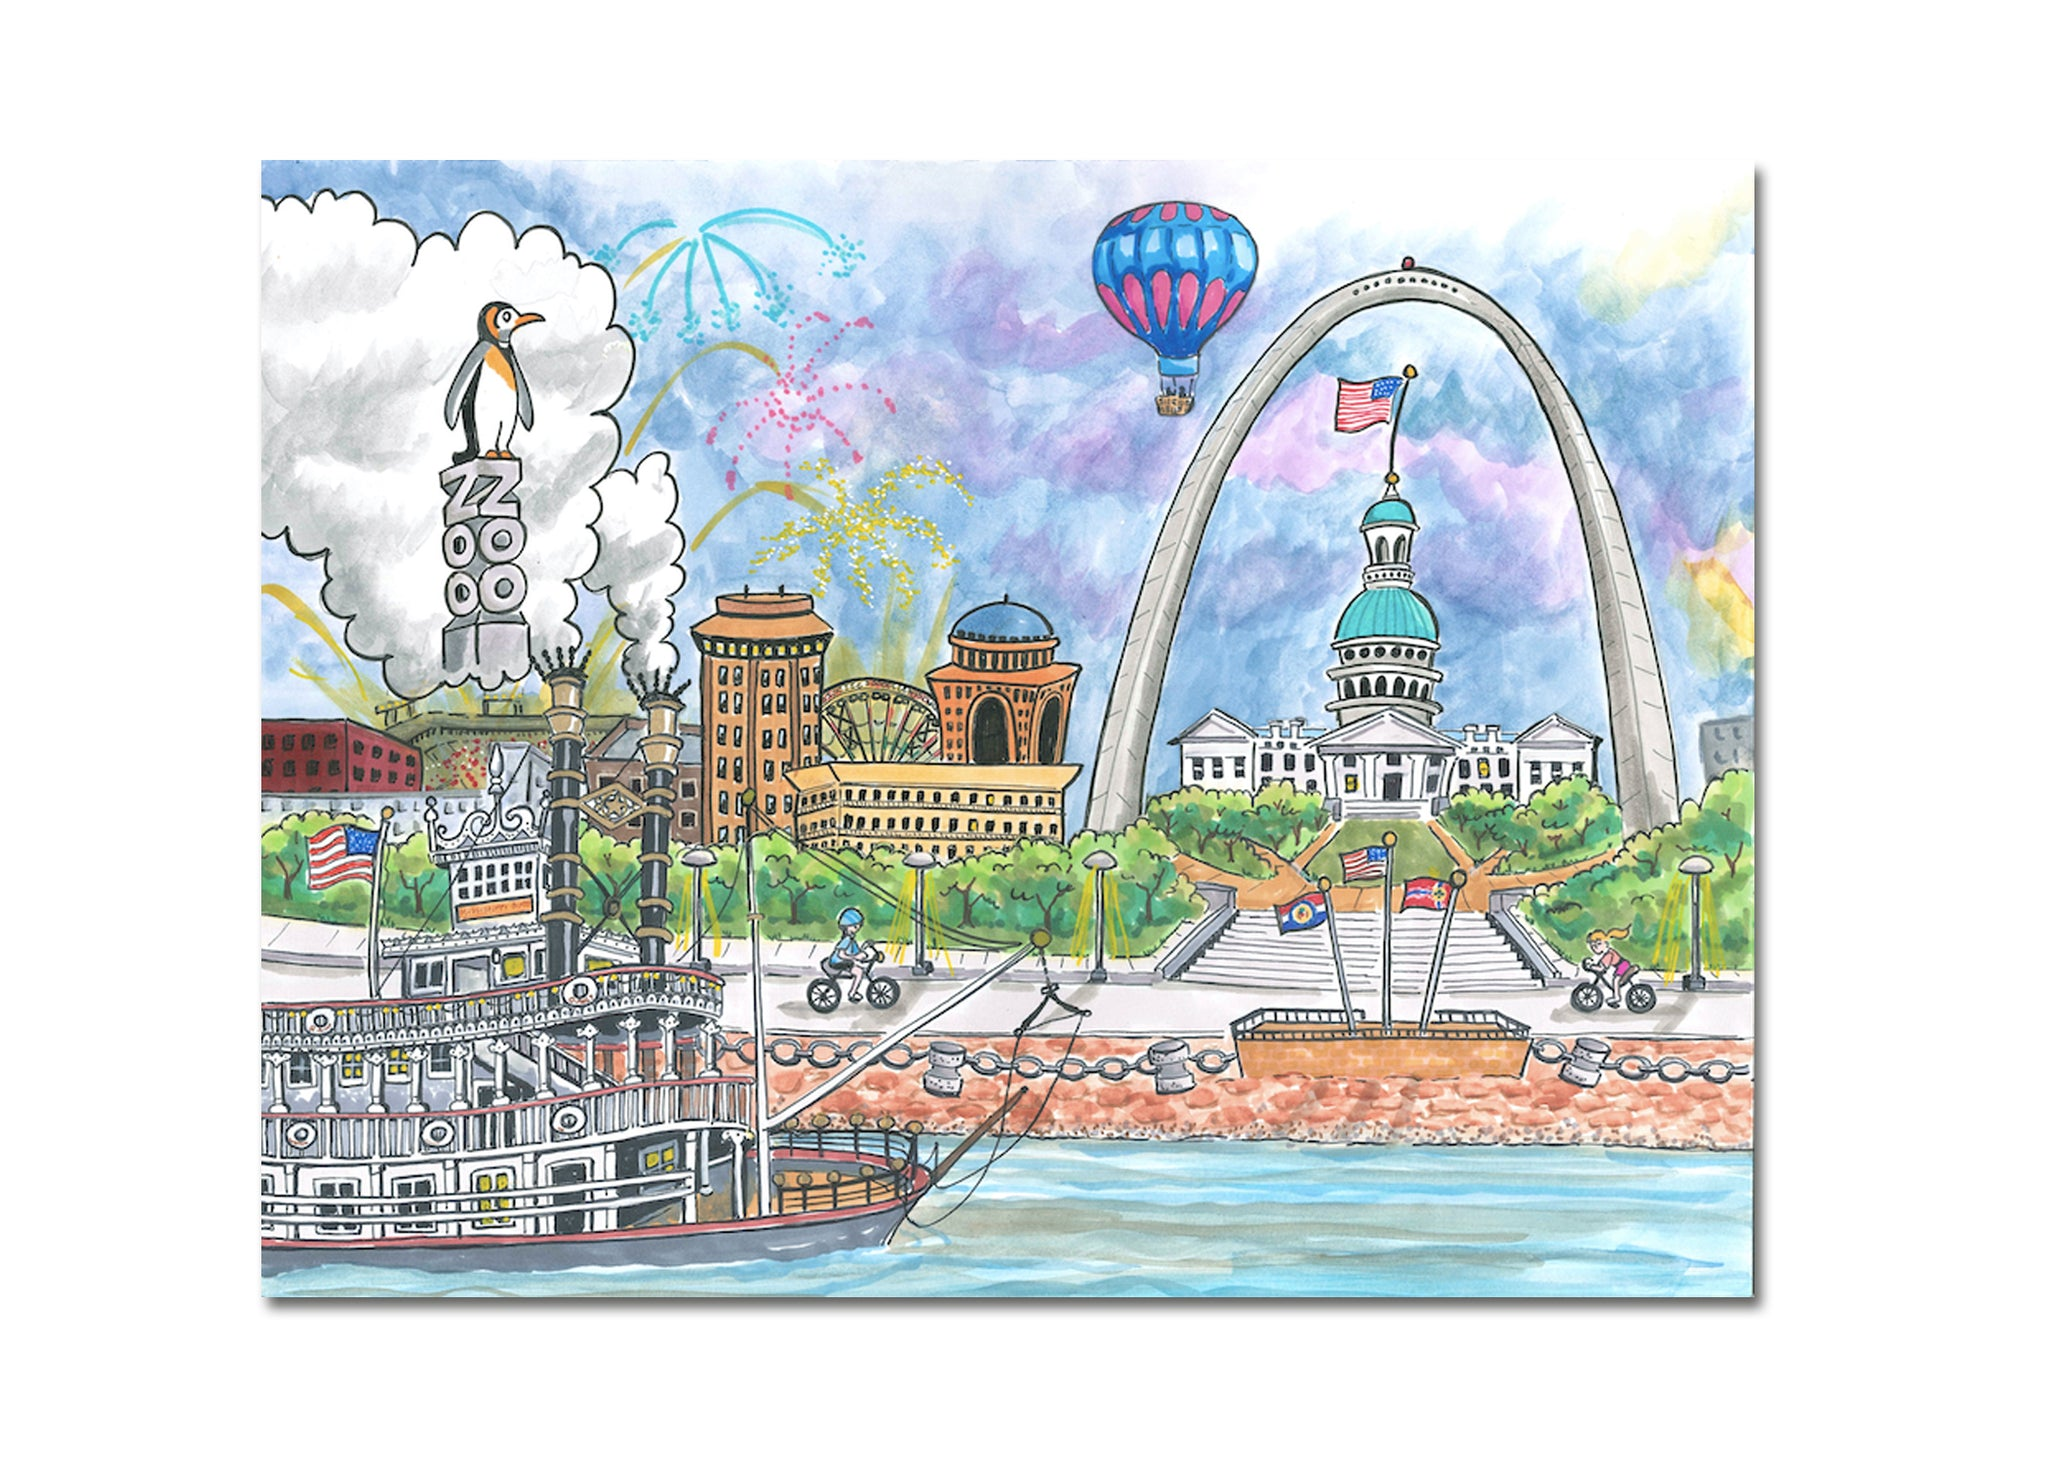 Goodnight St. Louis<br>Note Cards Series 3<br><br>Available Online and<br>at Retailers